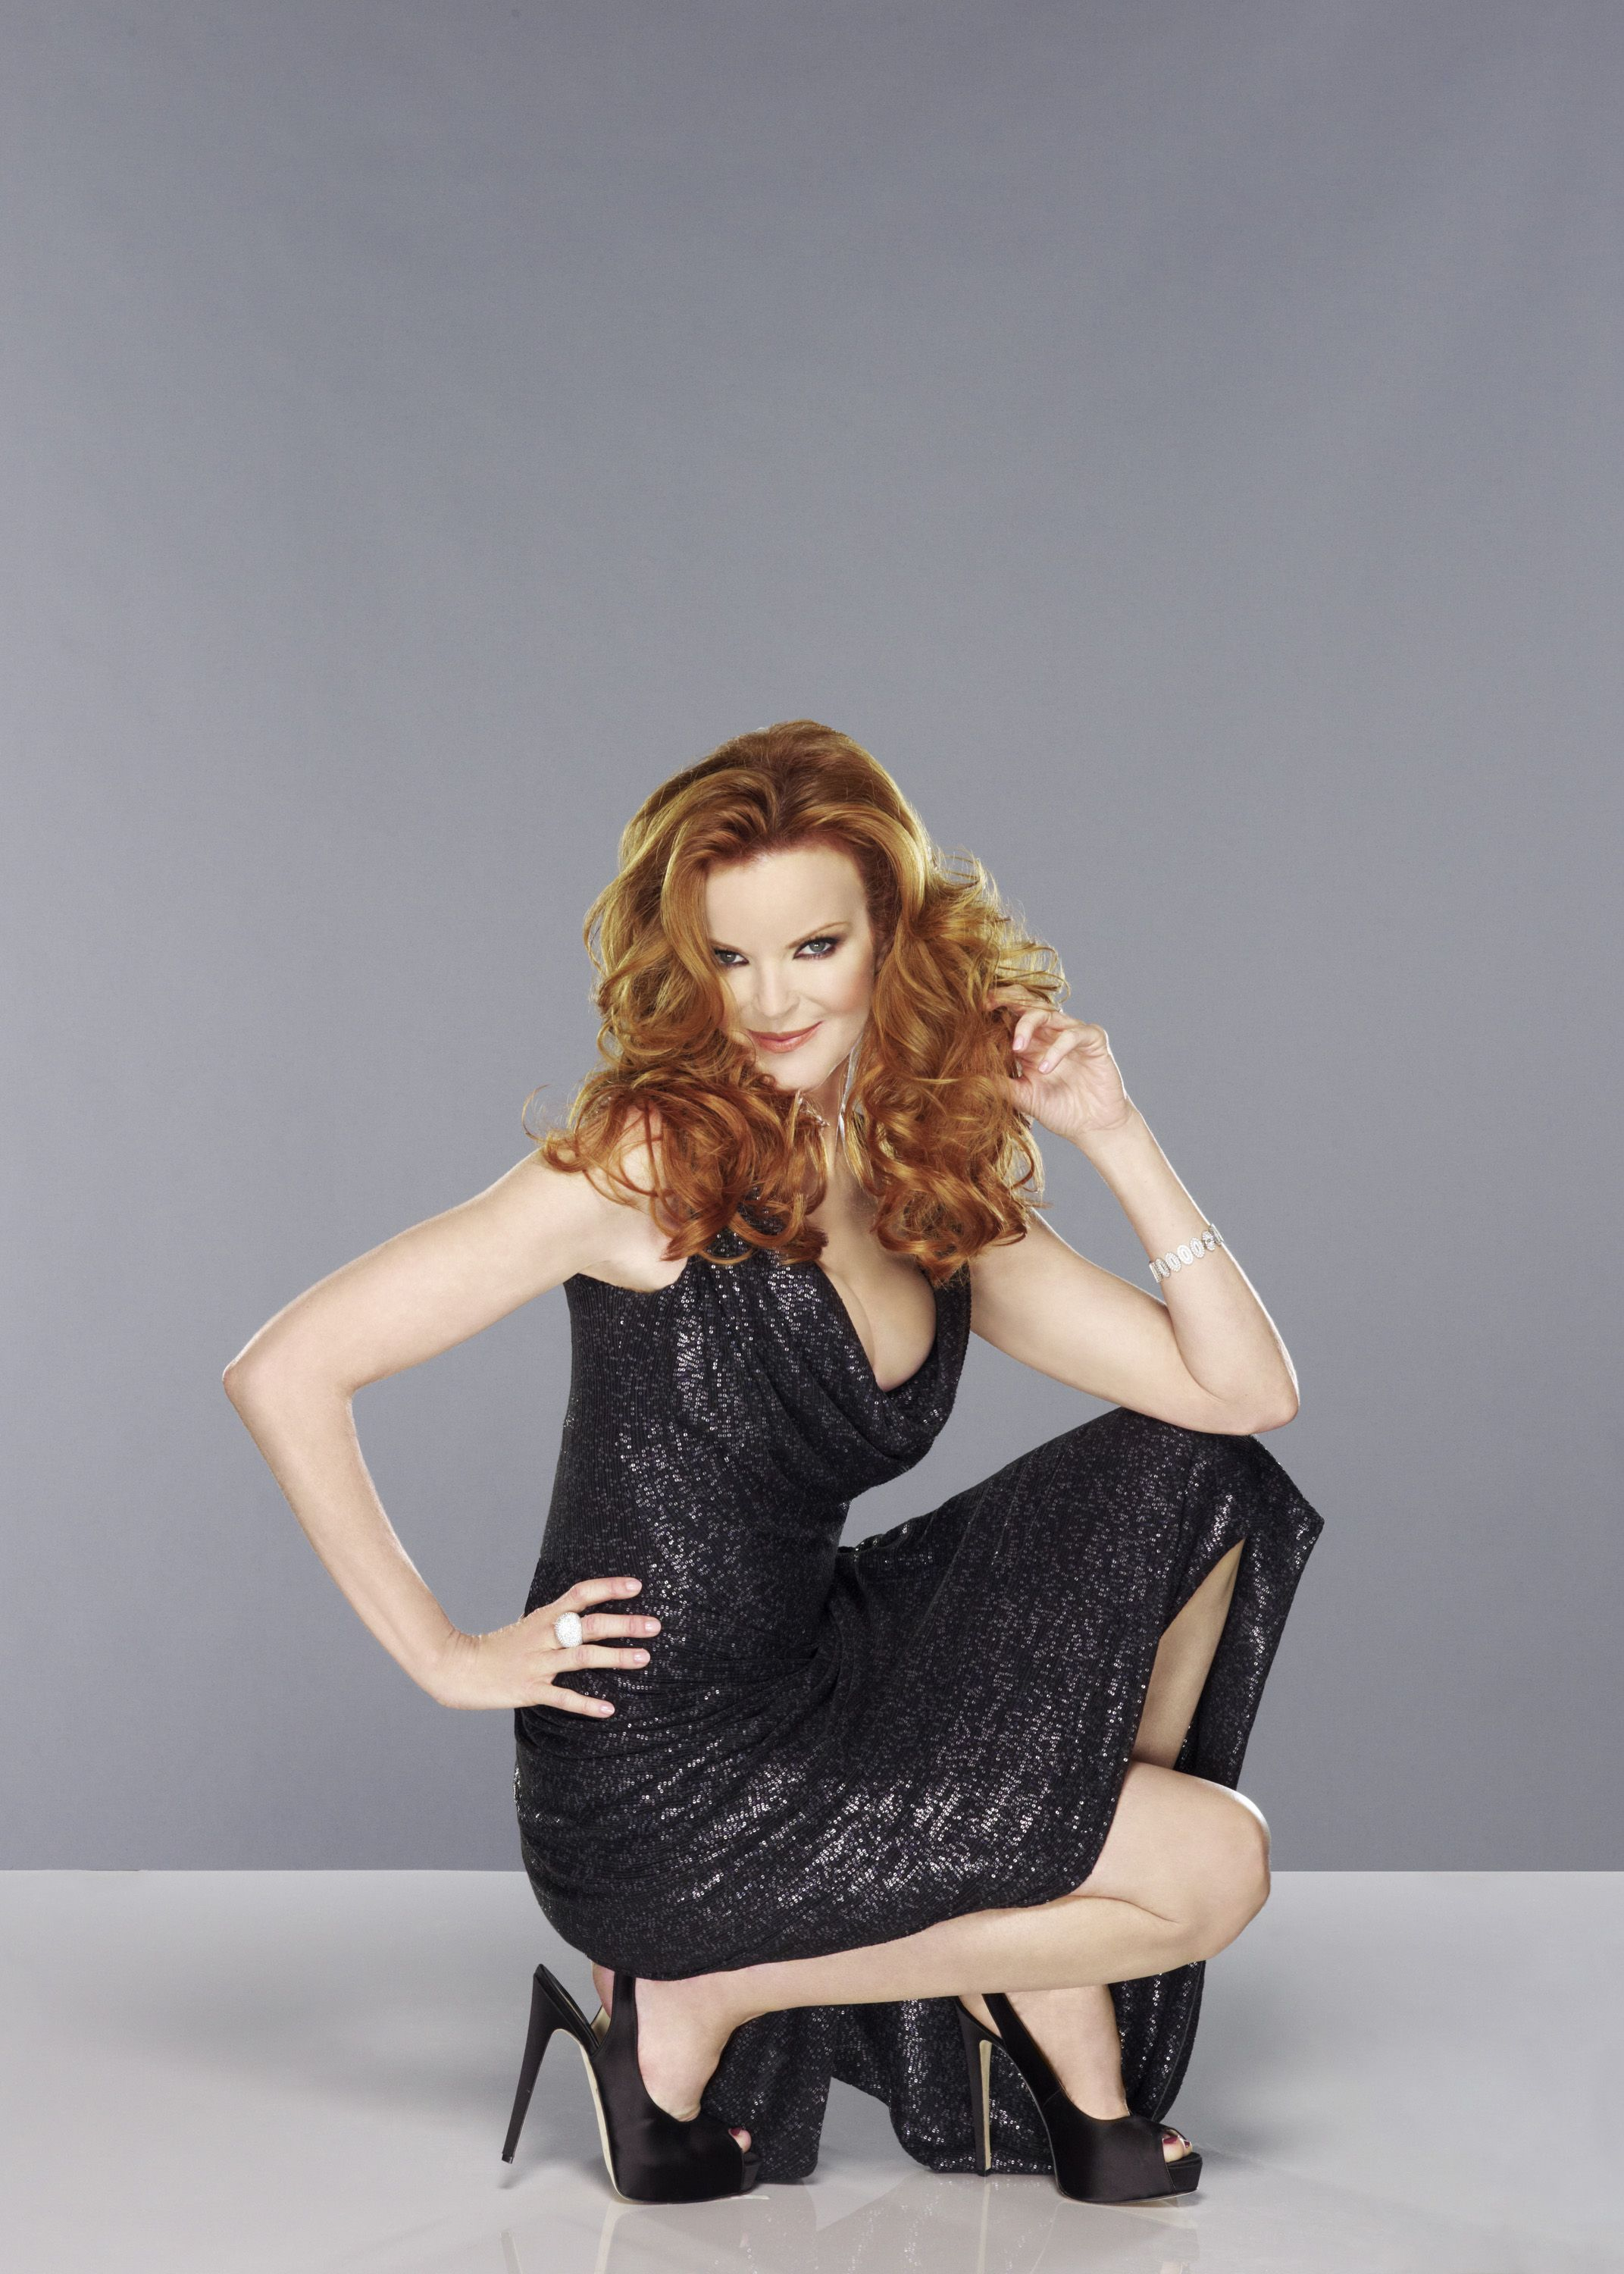 Daydreaming Click Image To Close This Window Desperate Housewives Marcia Cross Red Hair Woman Season 8 | season 7 | season 6 | season 5 | season 4 | season 3 | season 2 | season 1. desperate housewives marcia cross